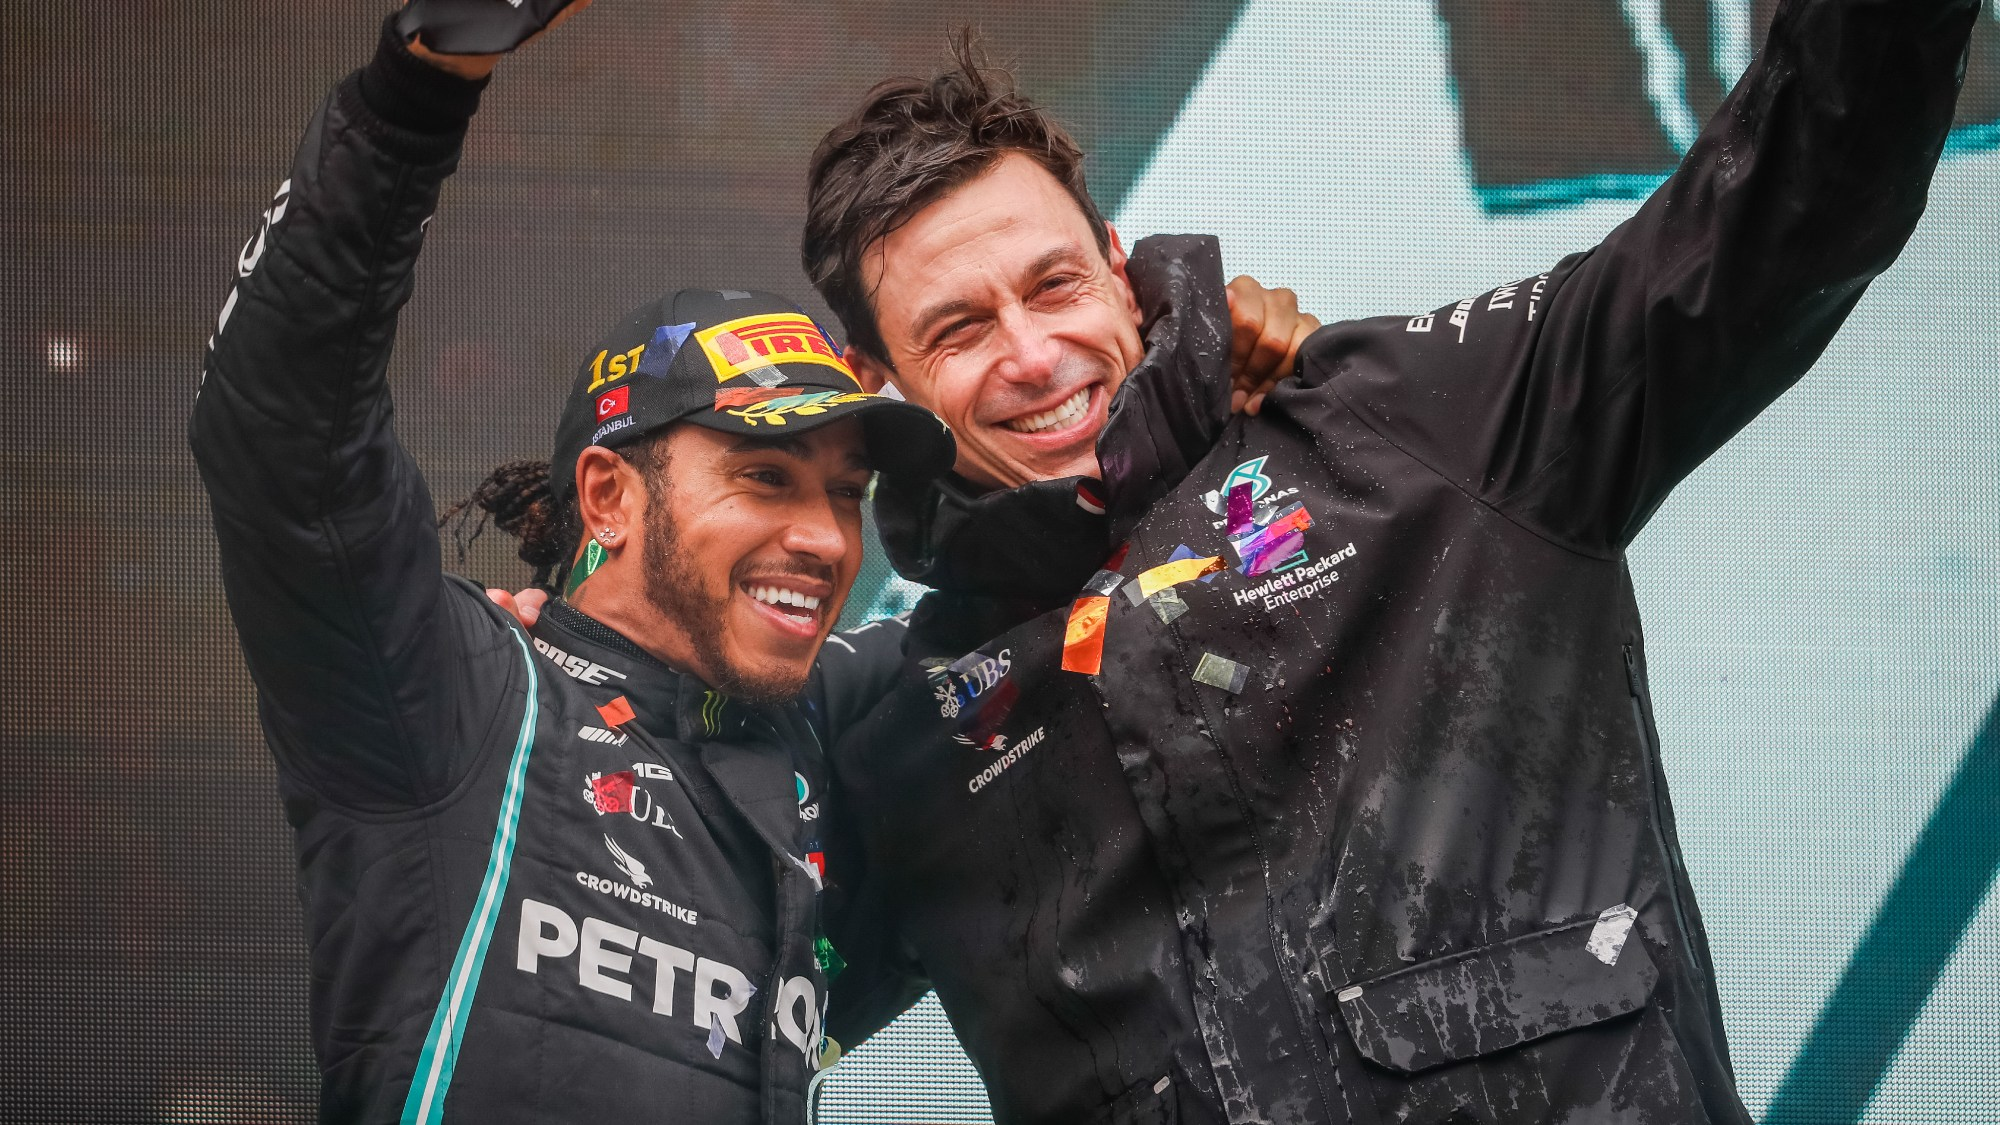 Hamilton's one year deal: Will he retire or race on like Schumacher?